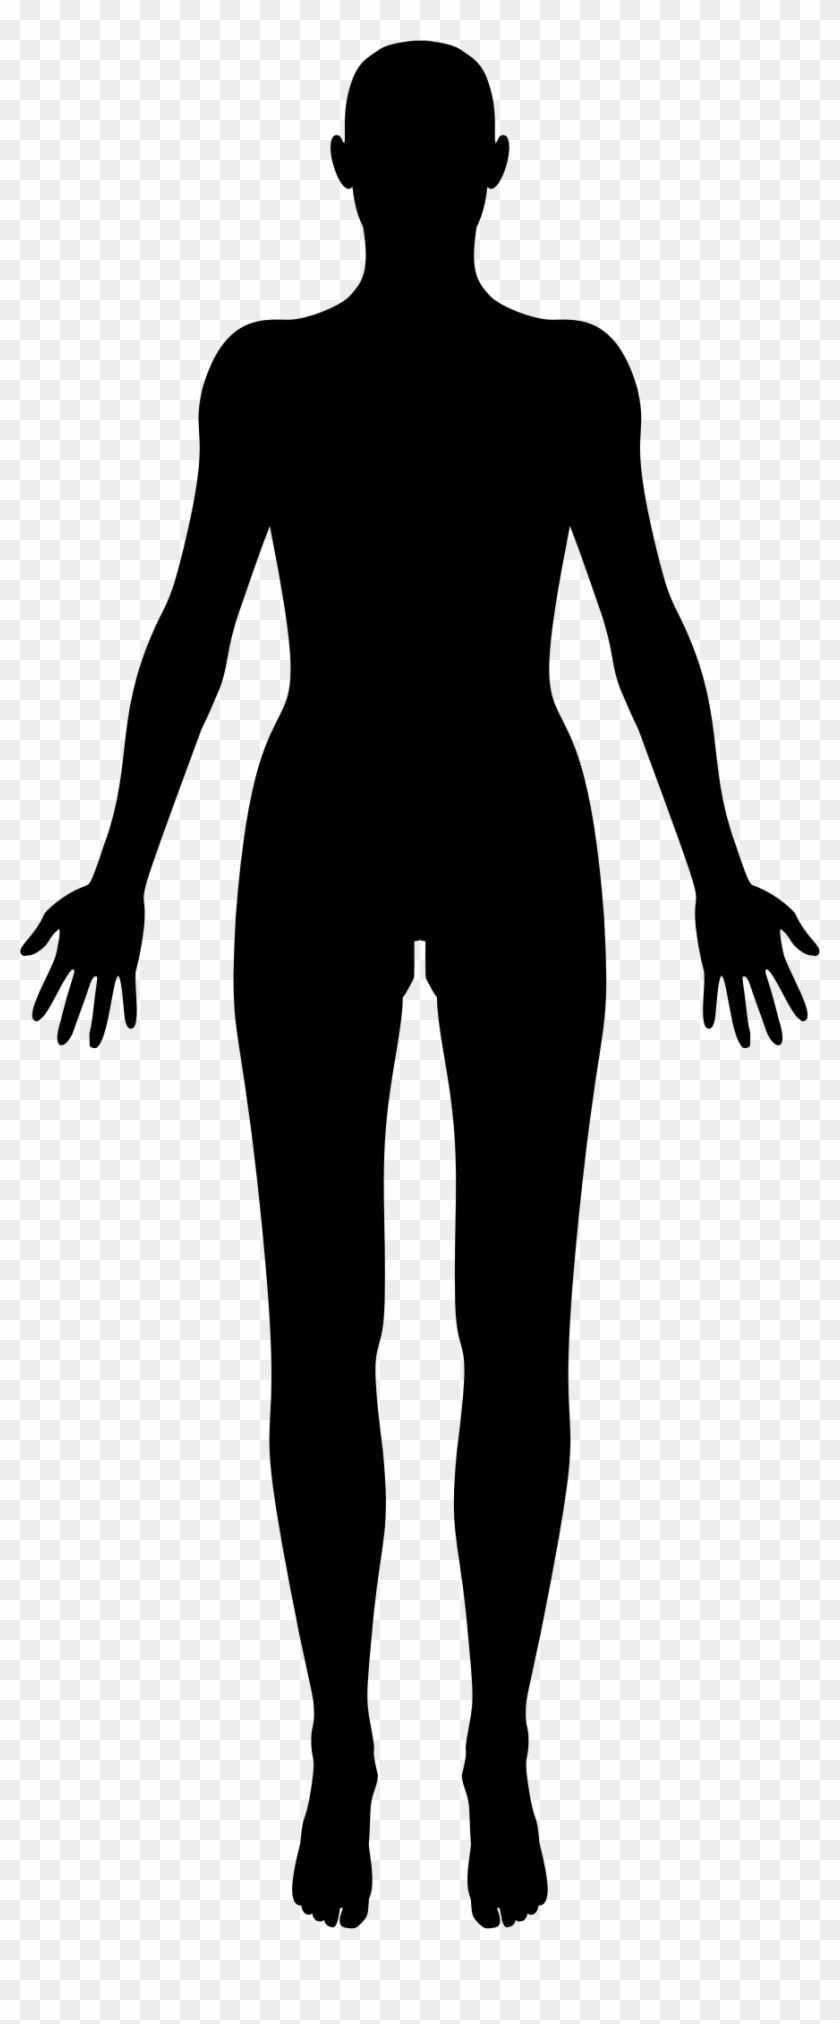 Clipart Female Body Part Of Slim Outline Royalty Free - Female Body Silhouette #86173